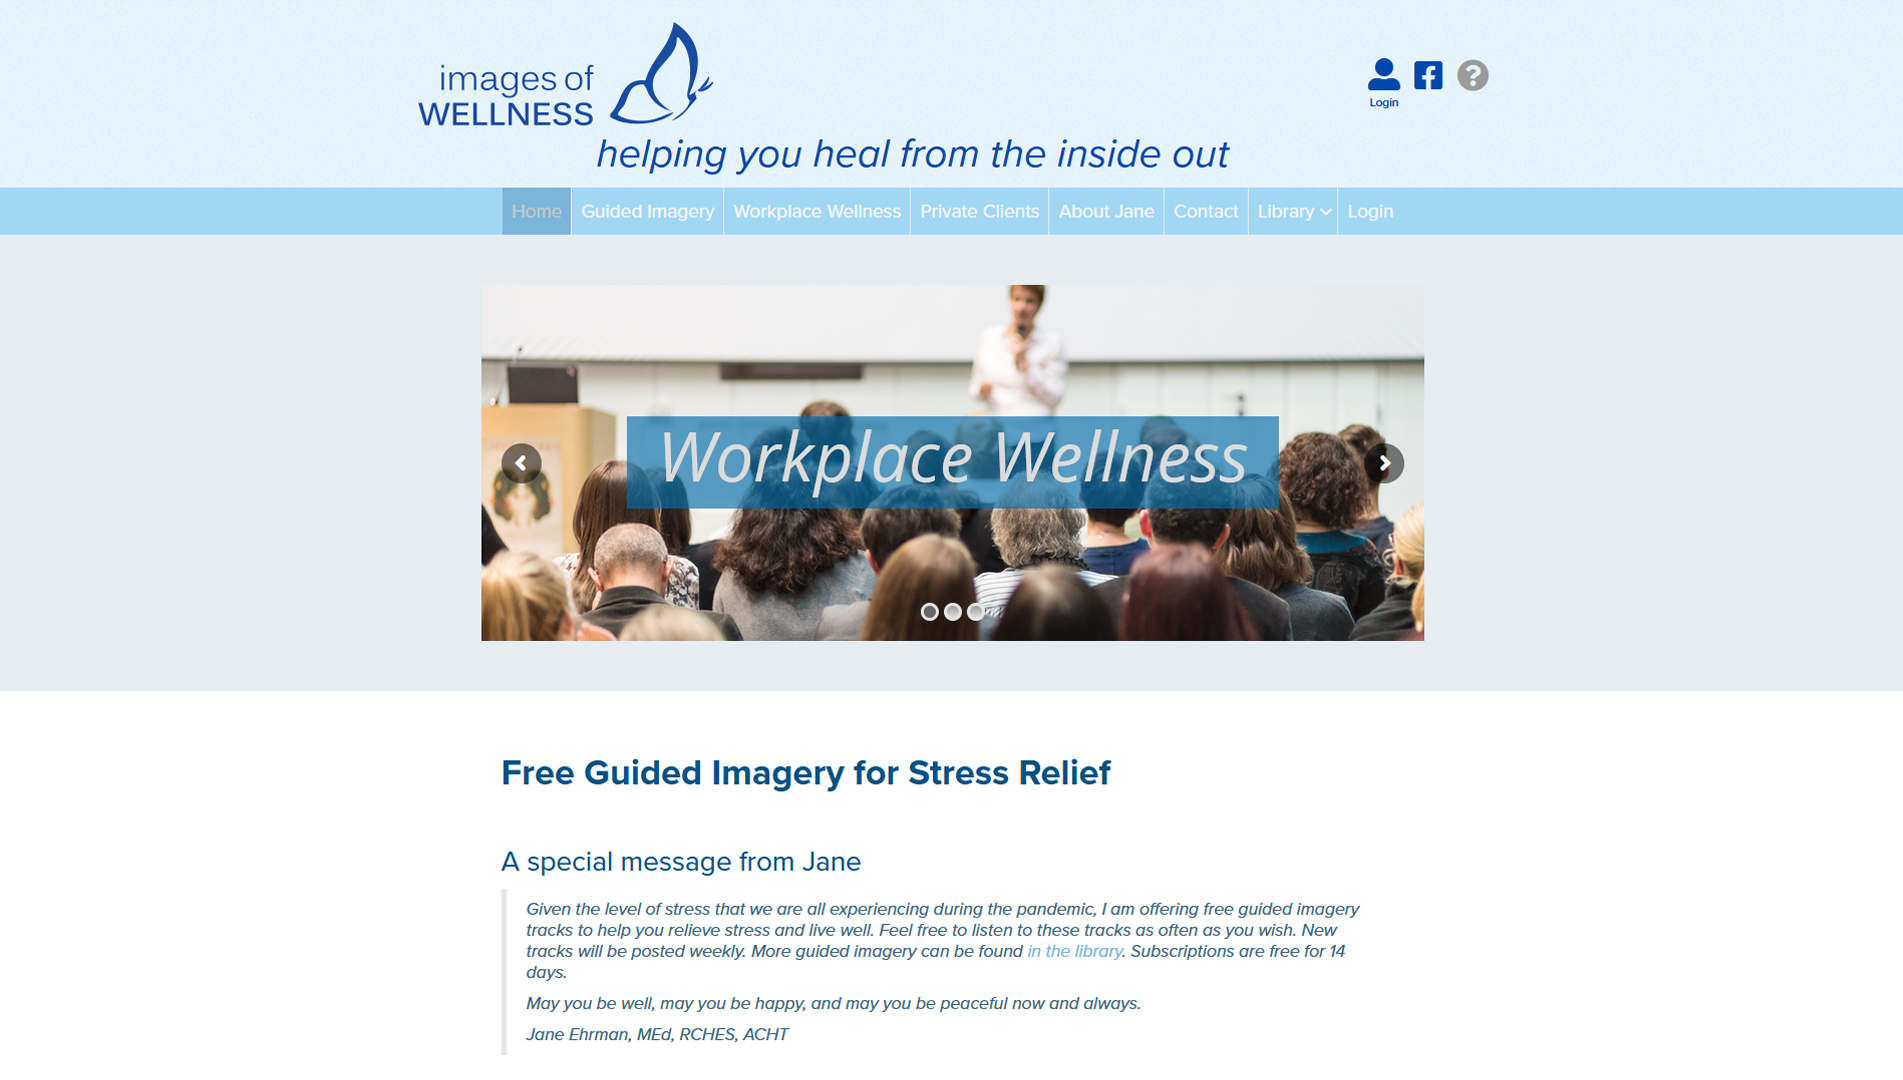 Images of Wellness 1